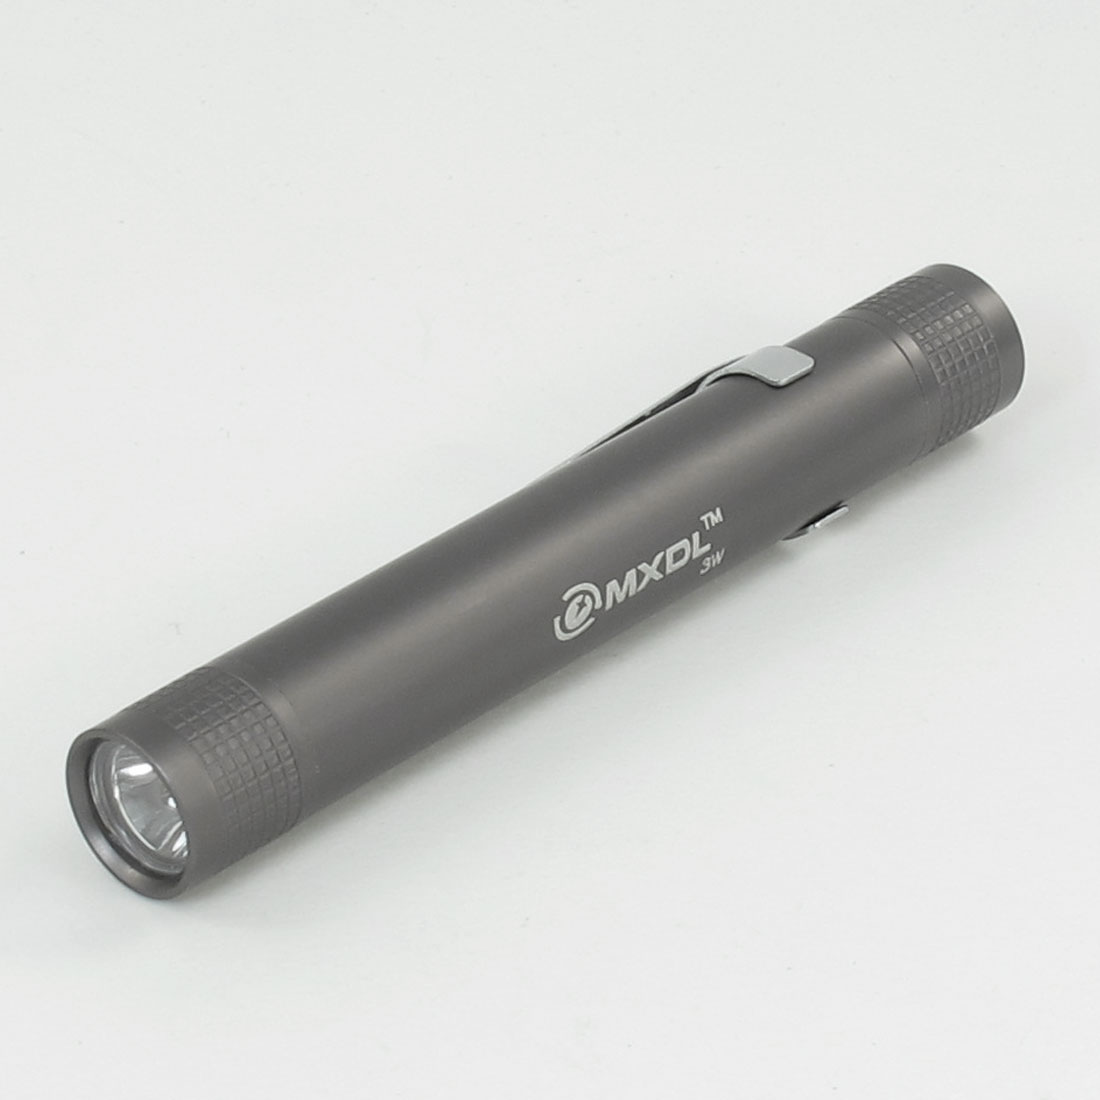 Outdoor Camping Gray Aluminum Alloy White LED Light Clip Flashlight Torch by Unique-Bargains